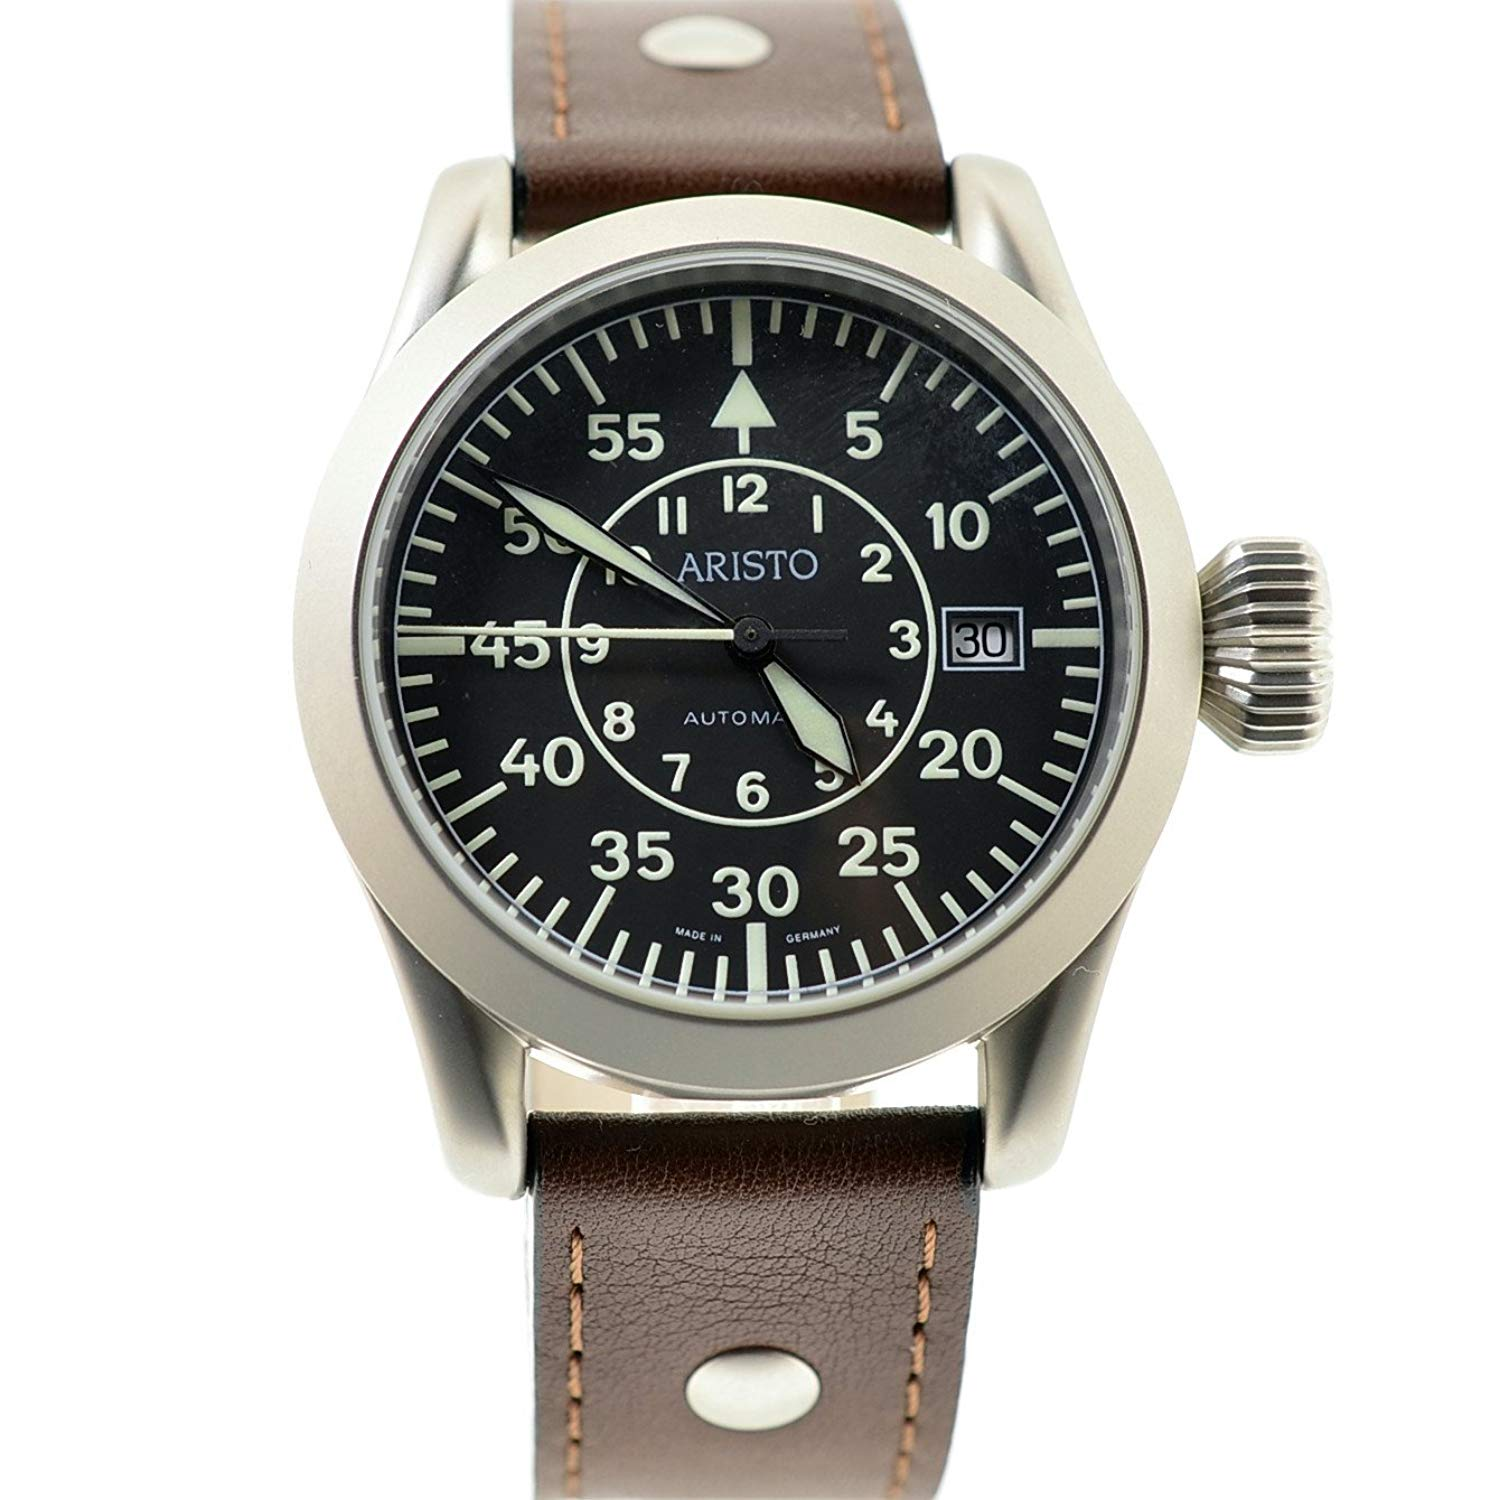 8d7d2cdbf93 Buy Aristo Swiss Automatic Pilots Watch with Carbon Fiber Dial ...